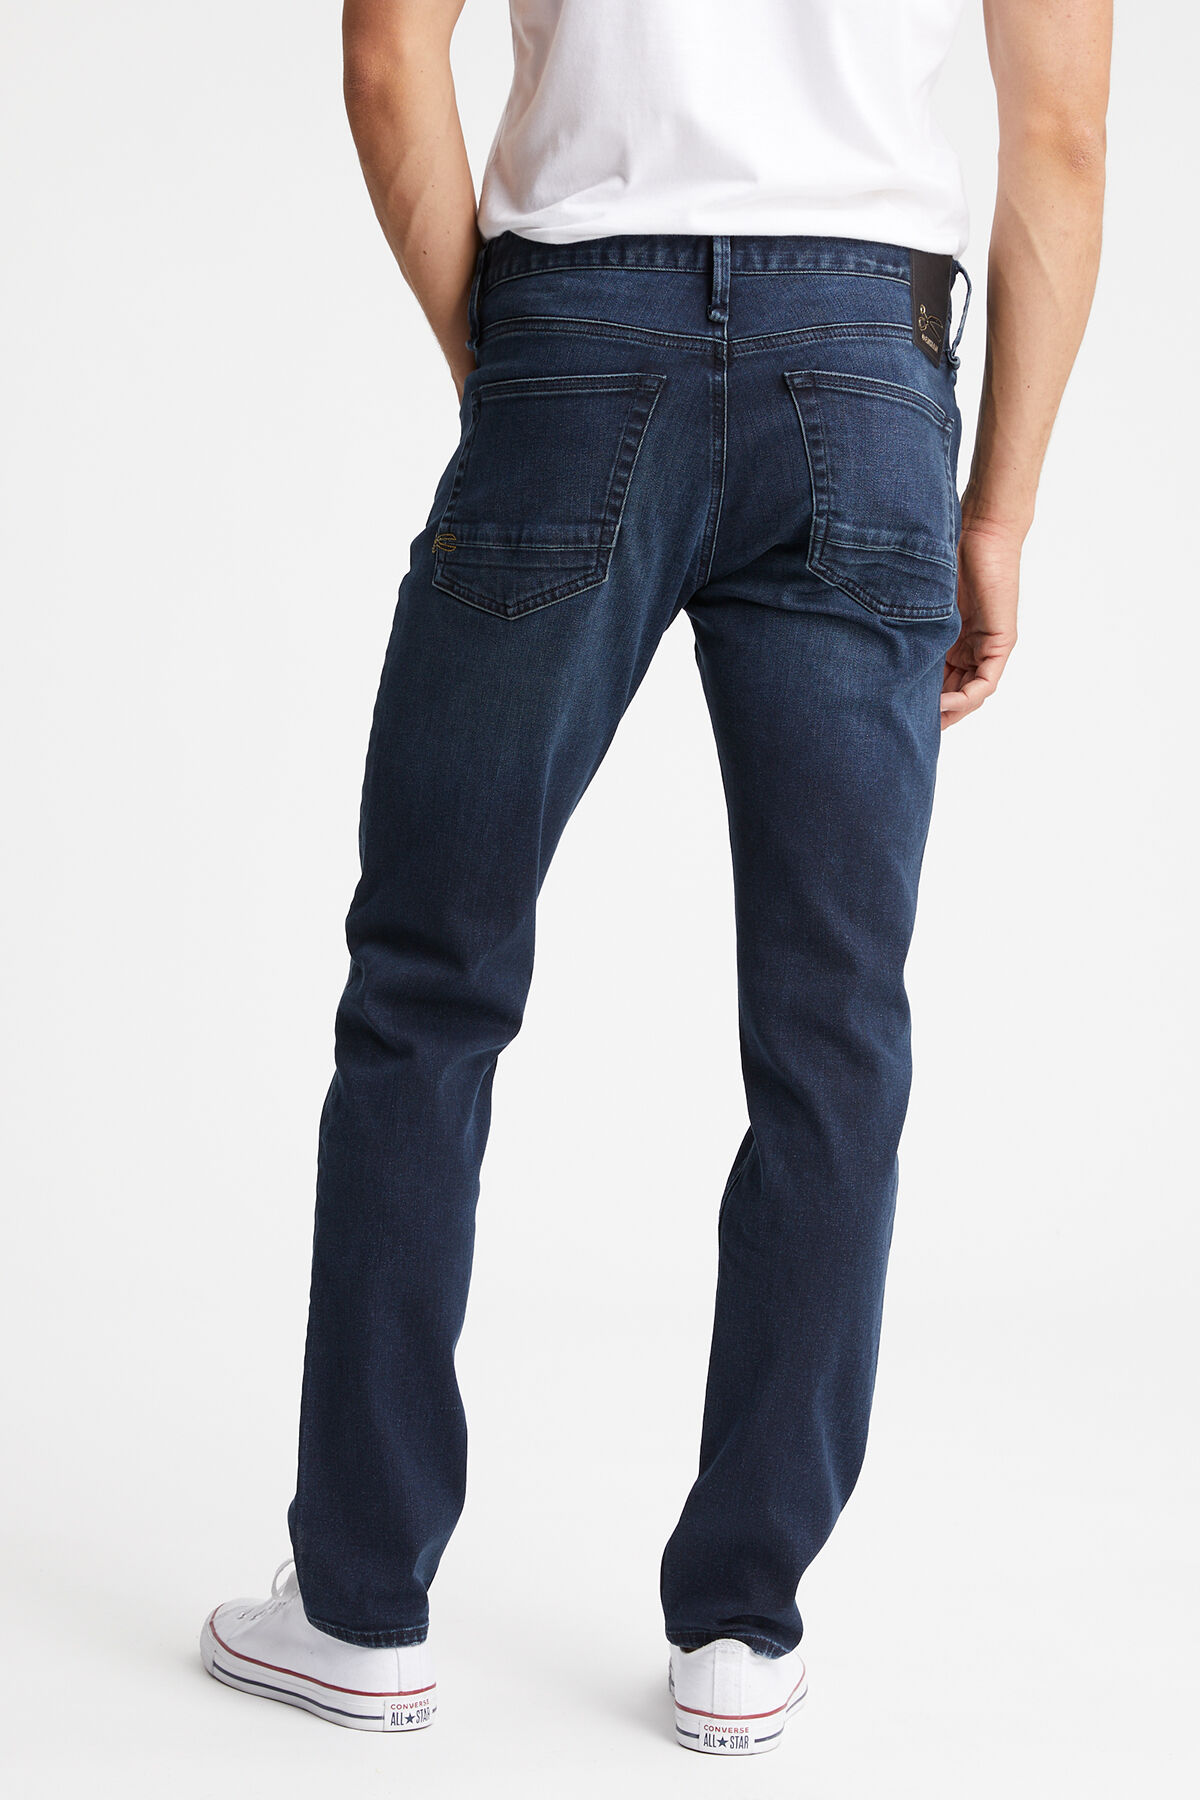 RAZOR Blue-black, light fade - Slim Fit